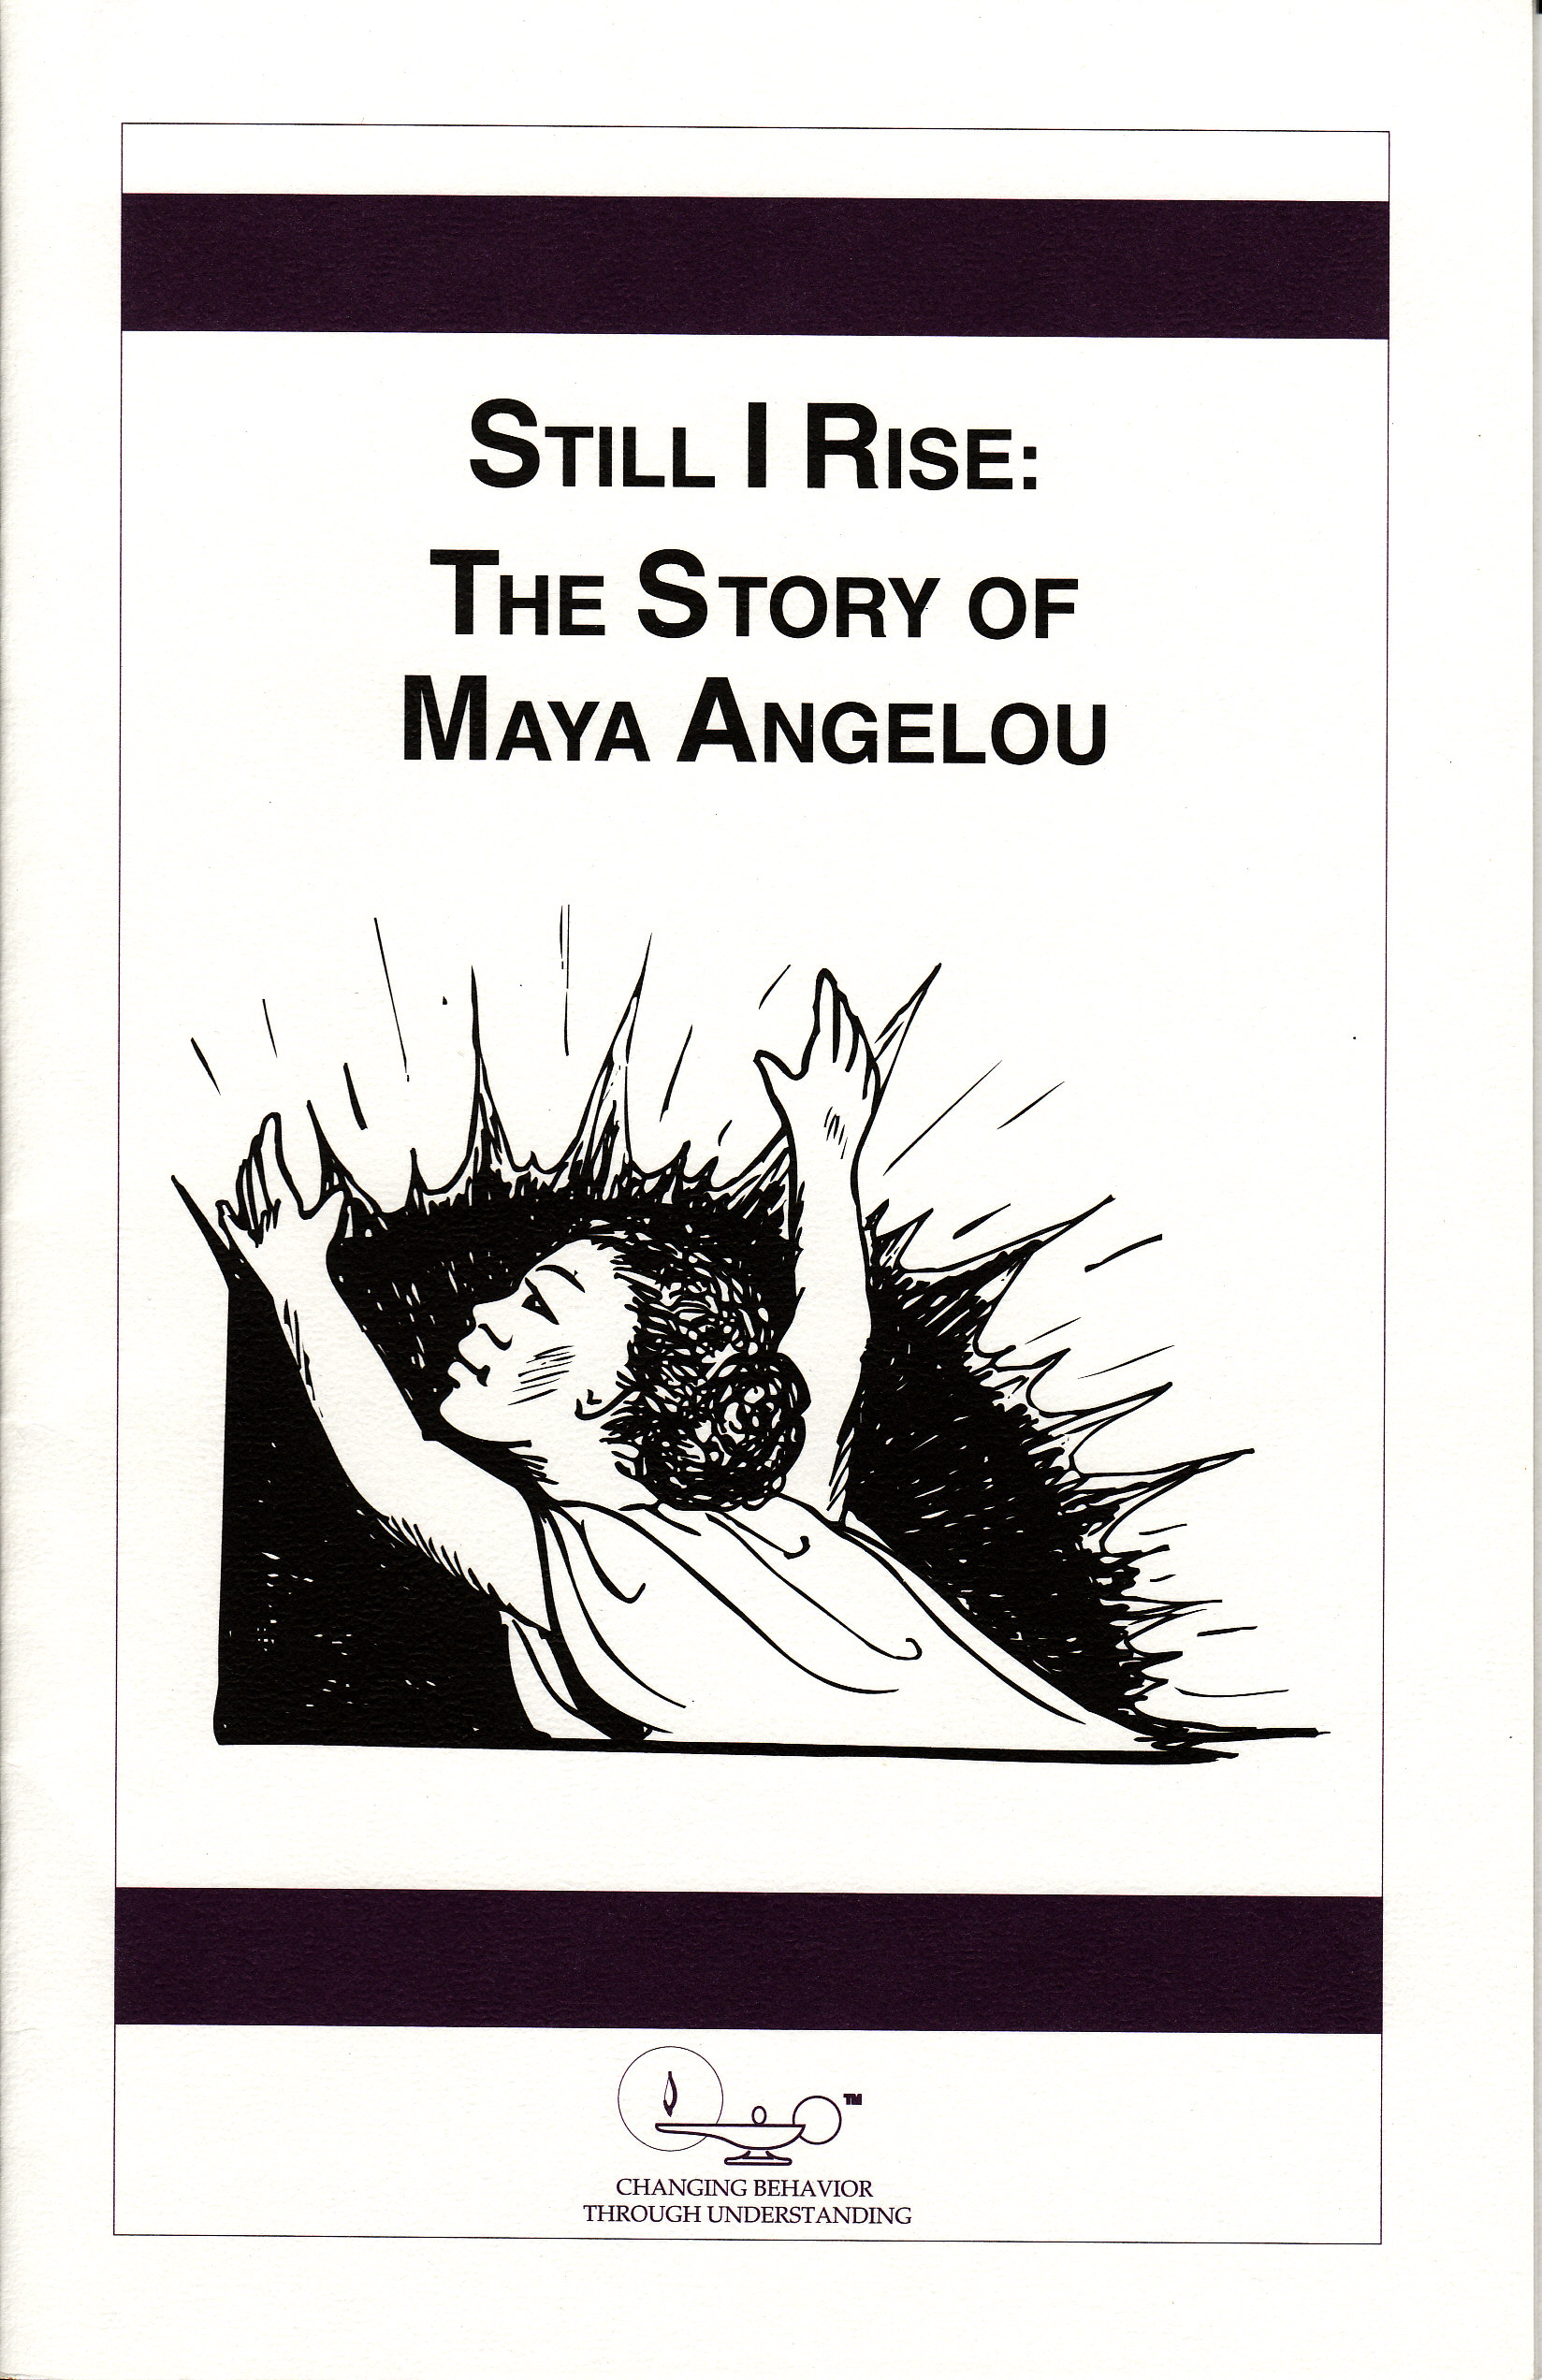 Waln Brown - Still I Rise: The Story of Maya Angelou